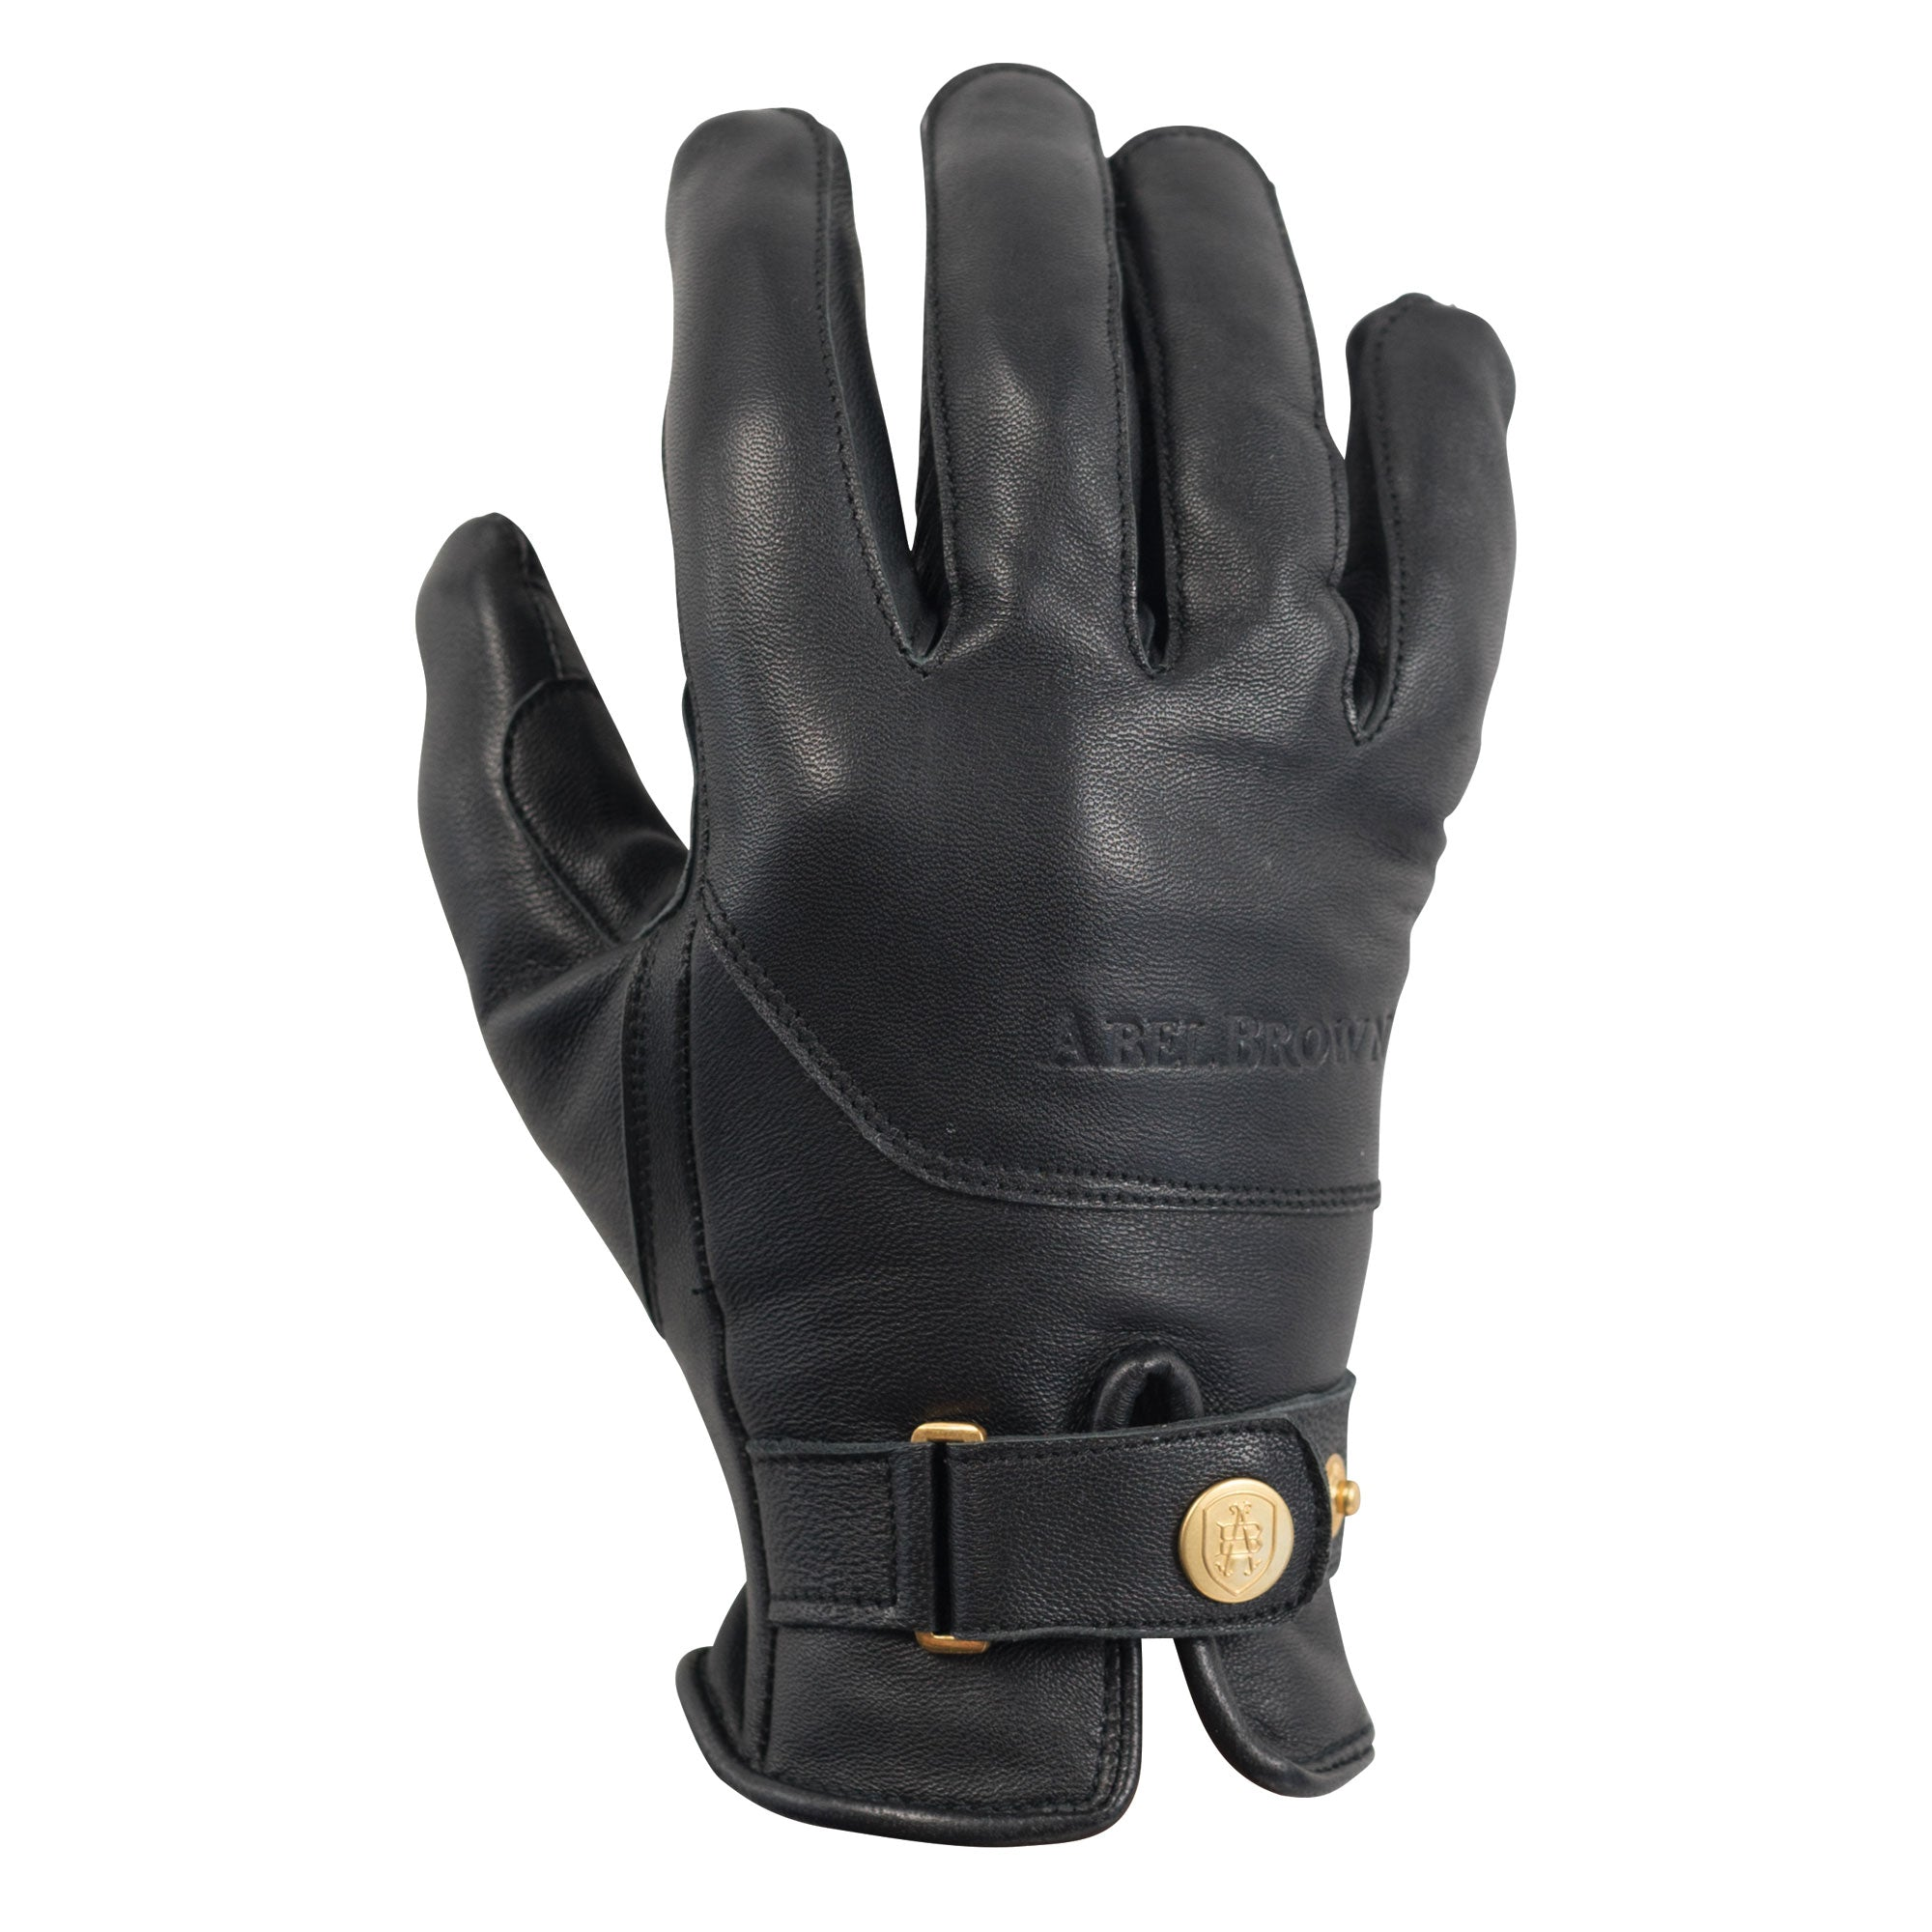 Le Mans Glove - Black - Abel Brown